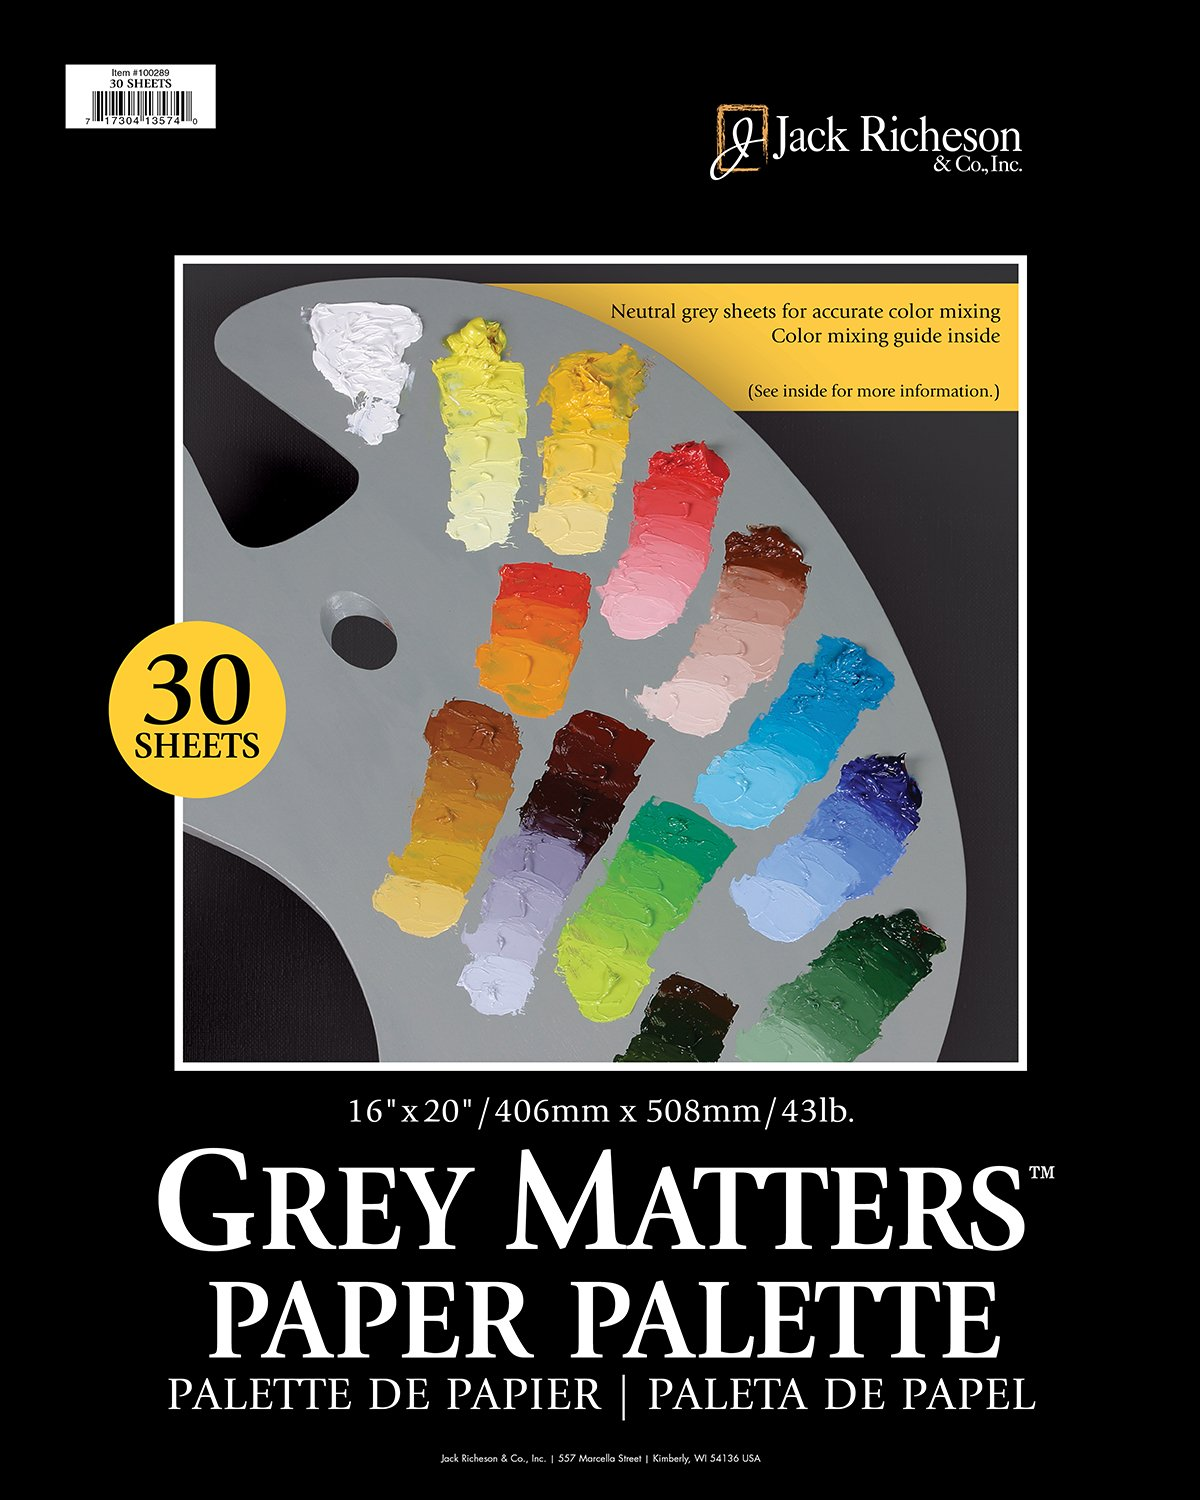 Jack Richeson Grey Matters Paper Palette 30 Sheets 16 x 20 by Jack Richeson